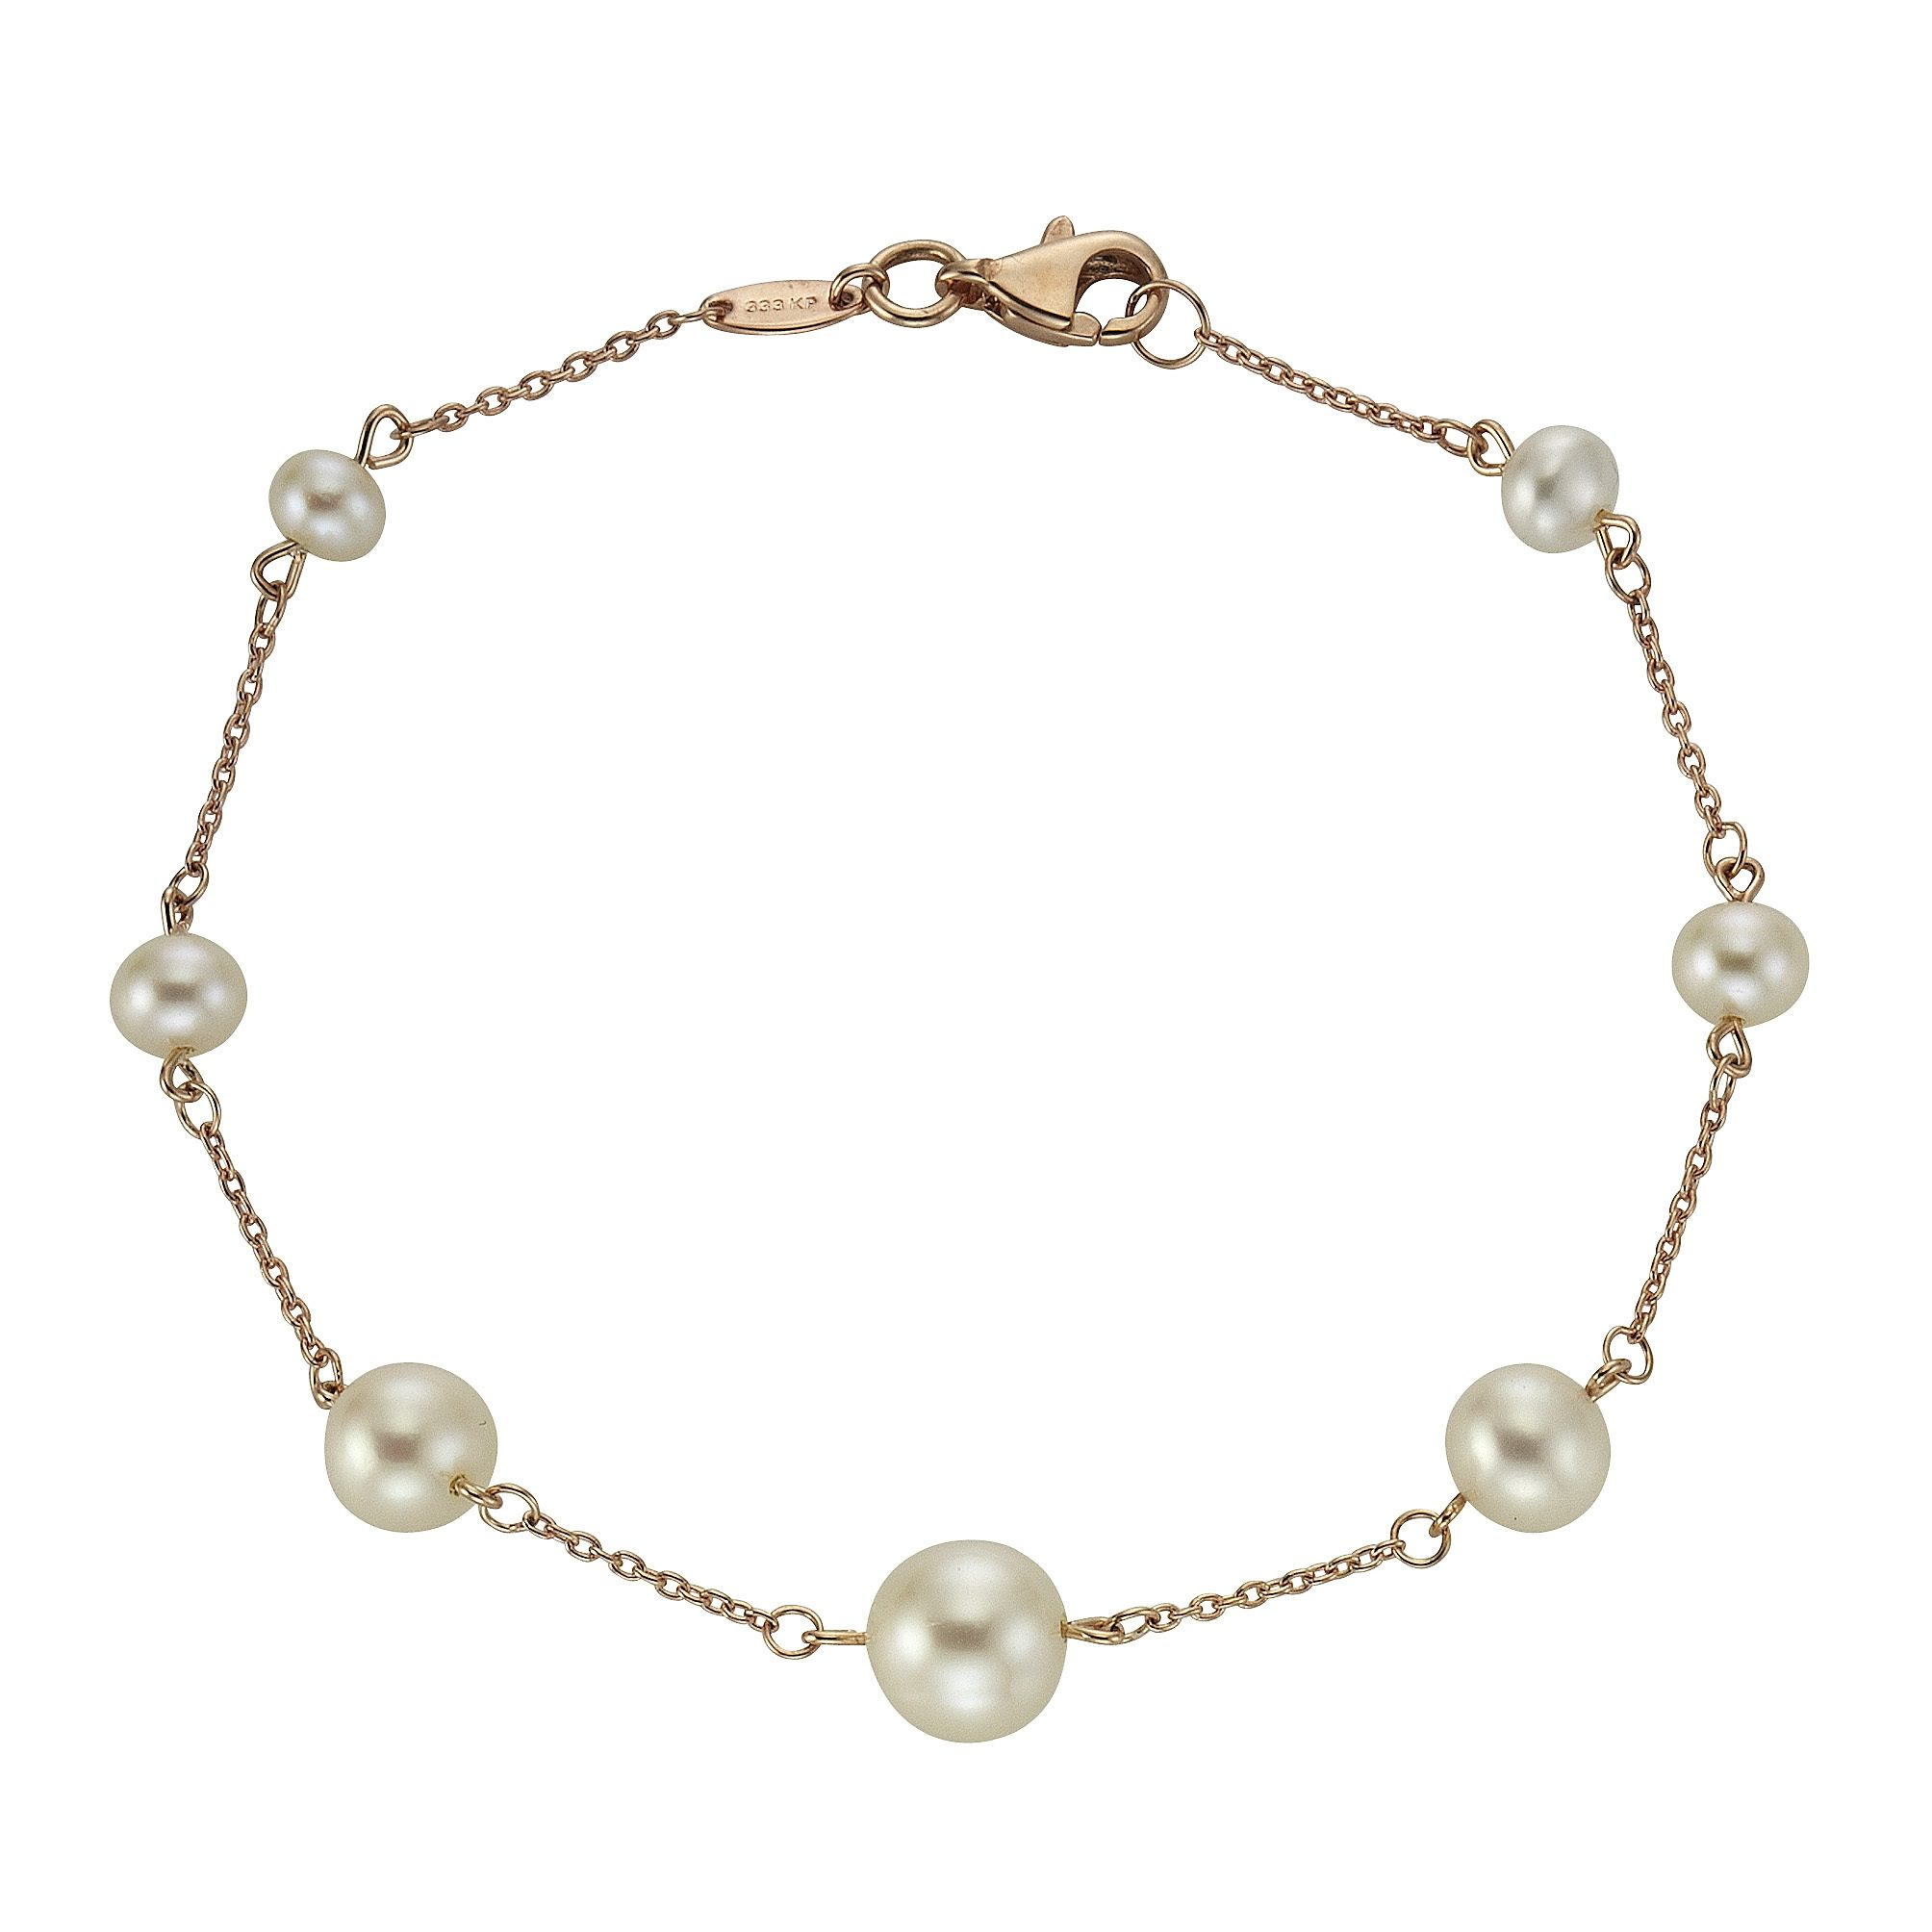 Fascination by Ellen K. Armband »333/- Rotgold Perle weiß«